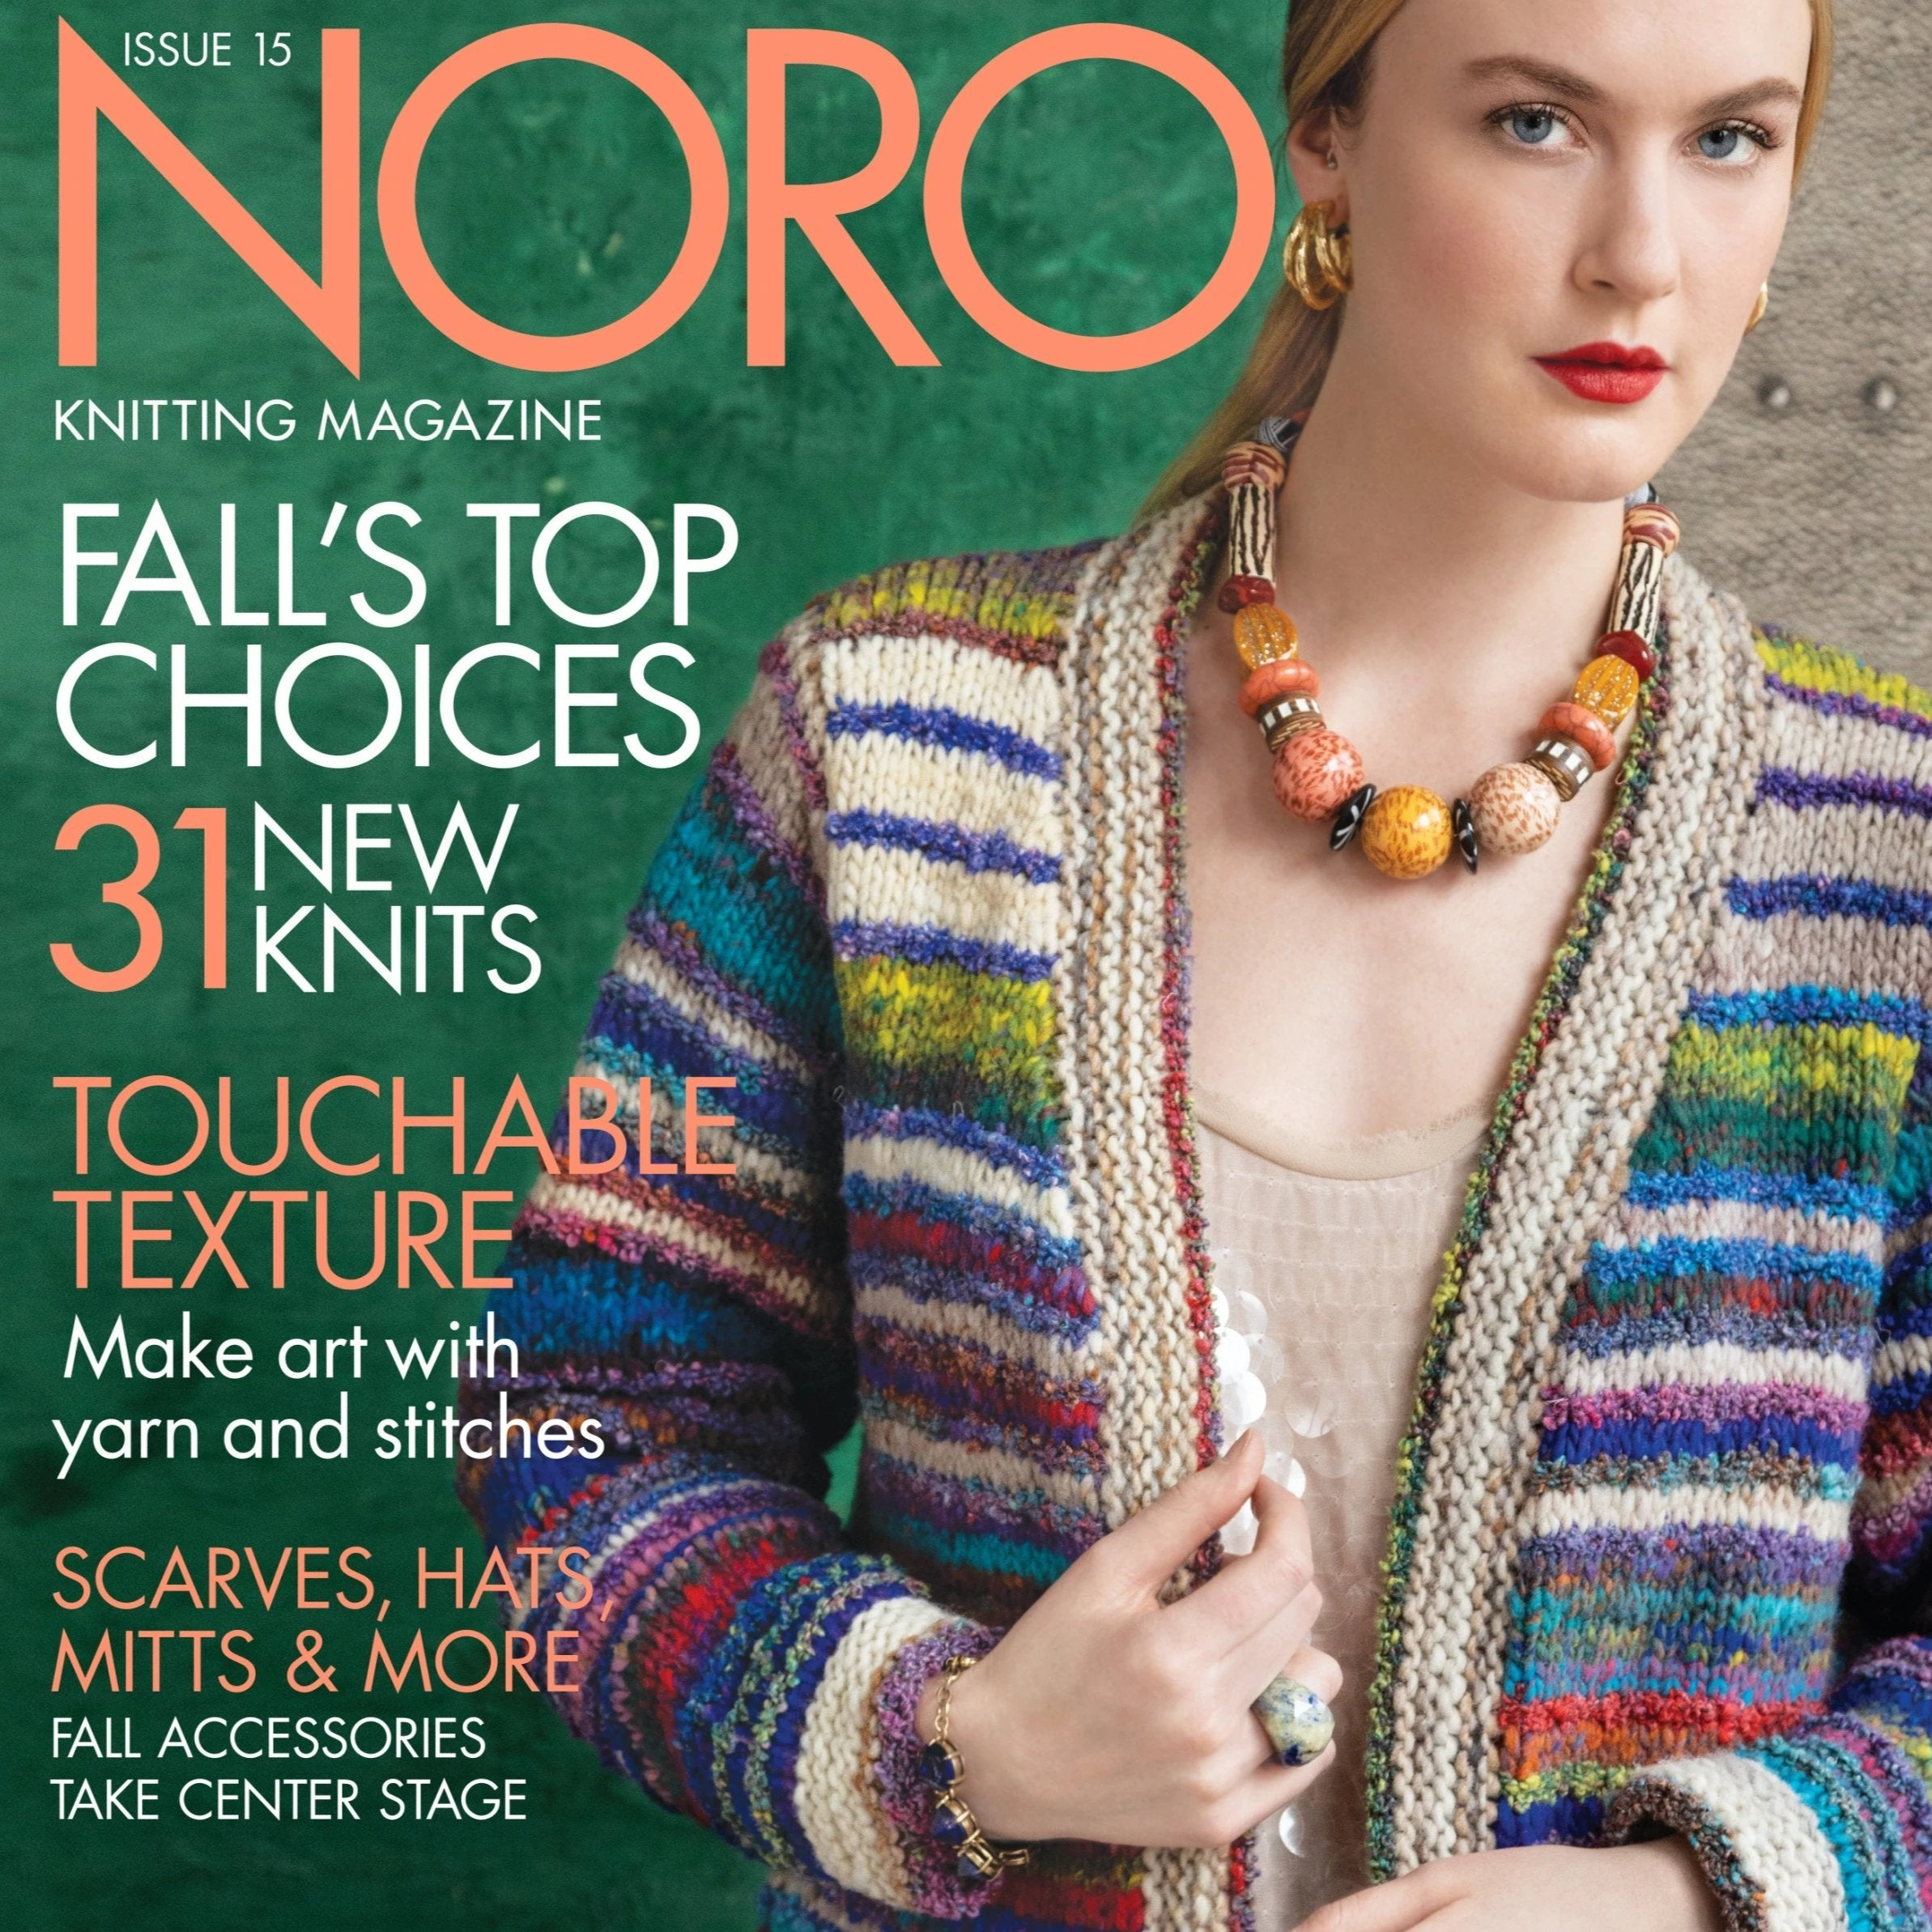 Noro Magazine - Issue 15 2019